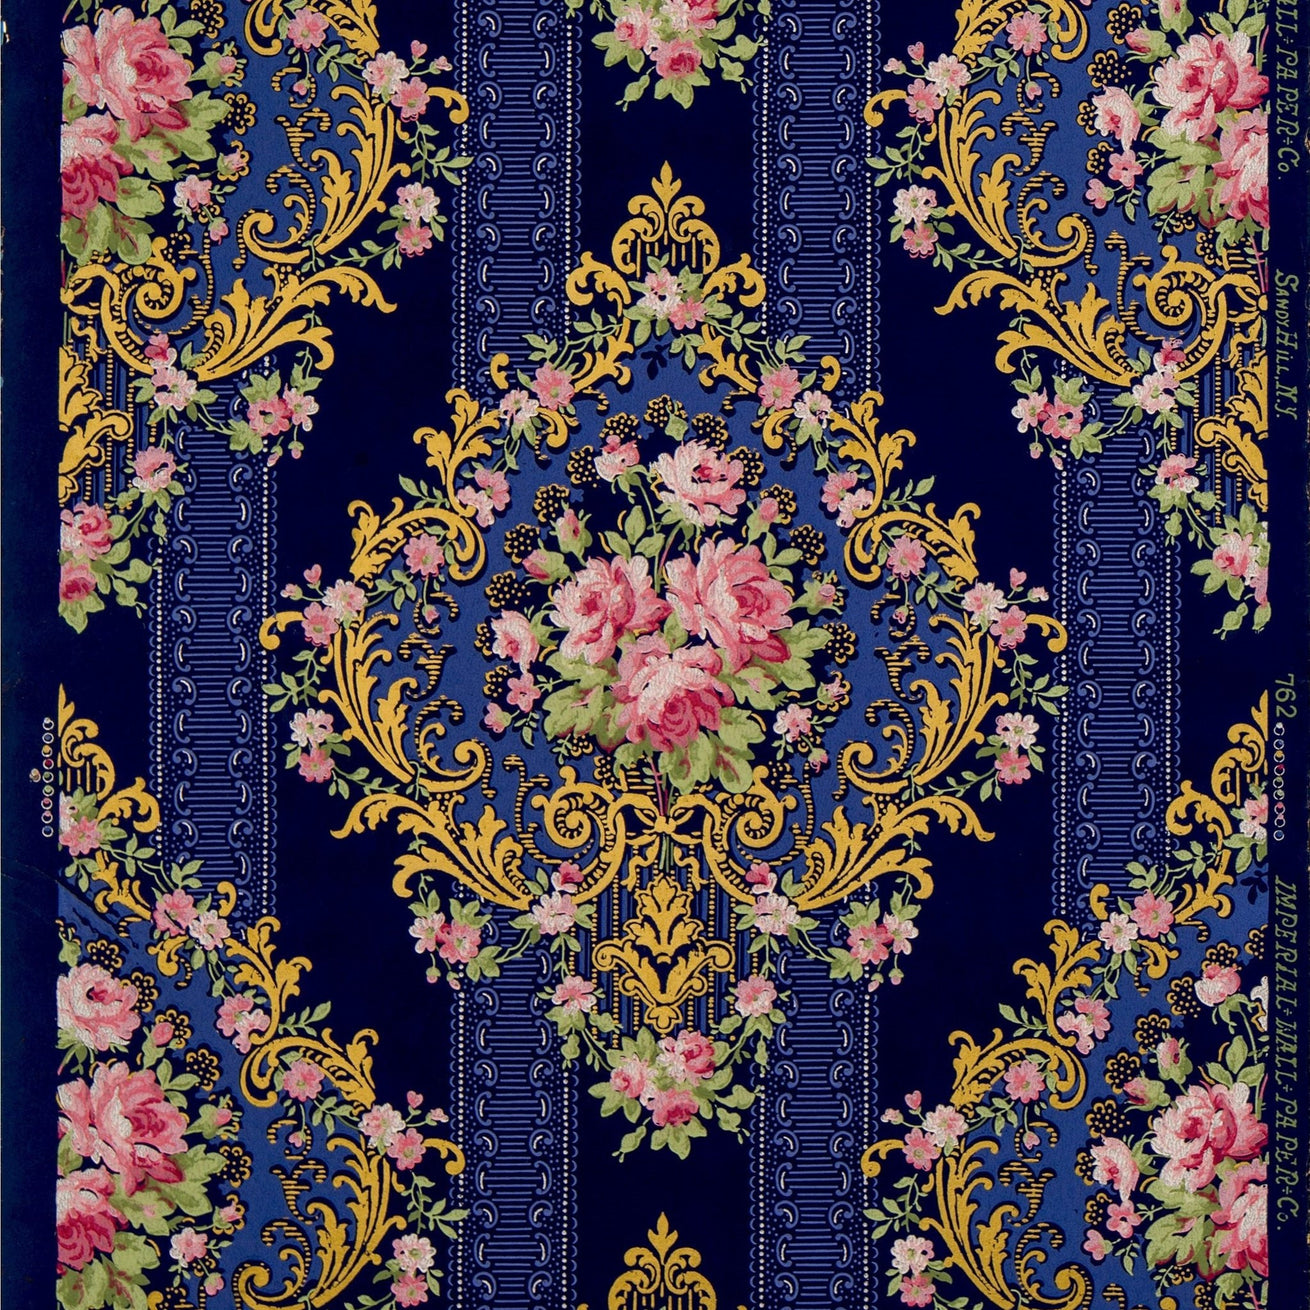 Roses in Bold Diamond Scroll Cartouches - Antique Wallpaper Remnant